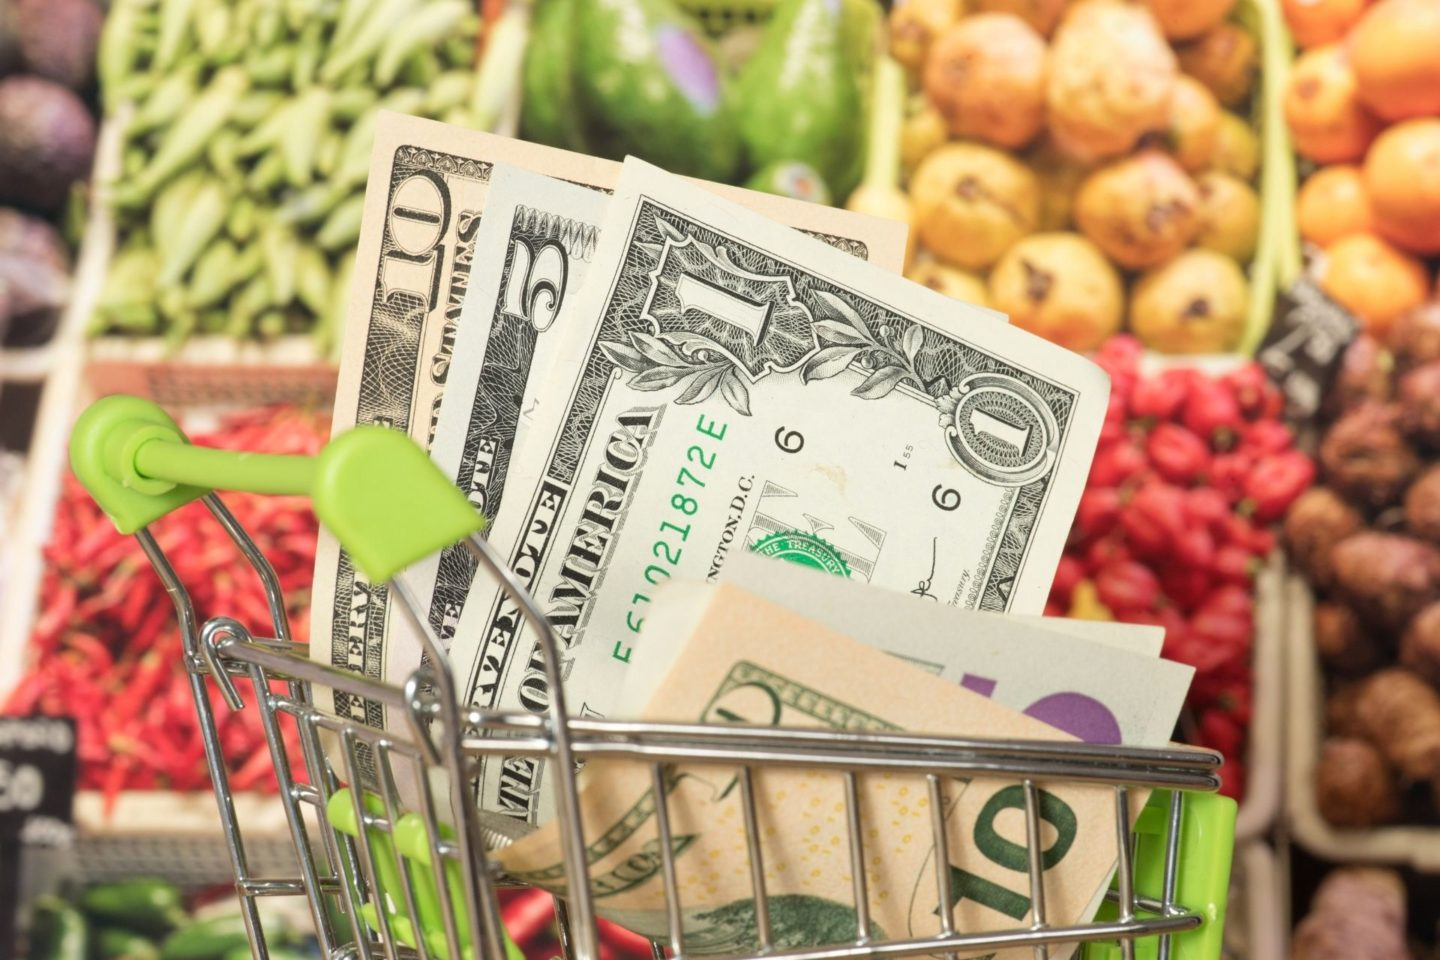 How to save money on groceries – 15 easy money saving ideas